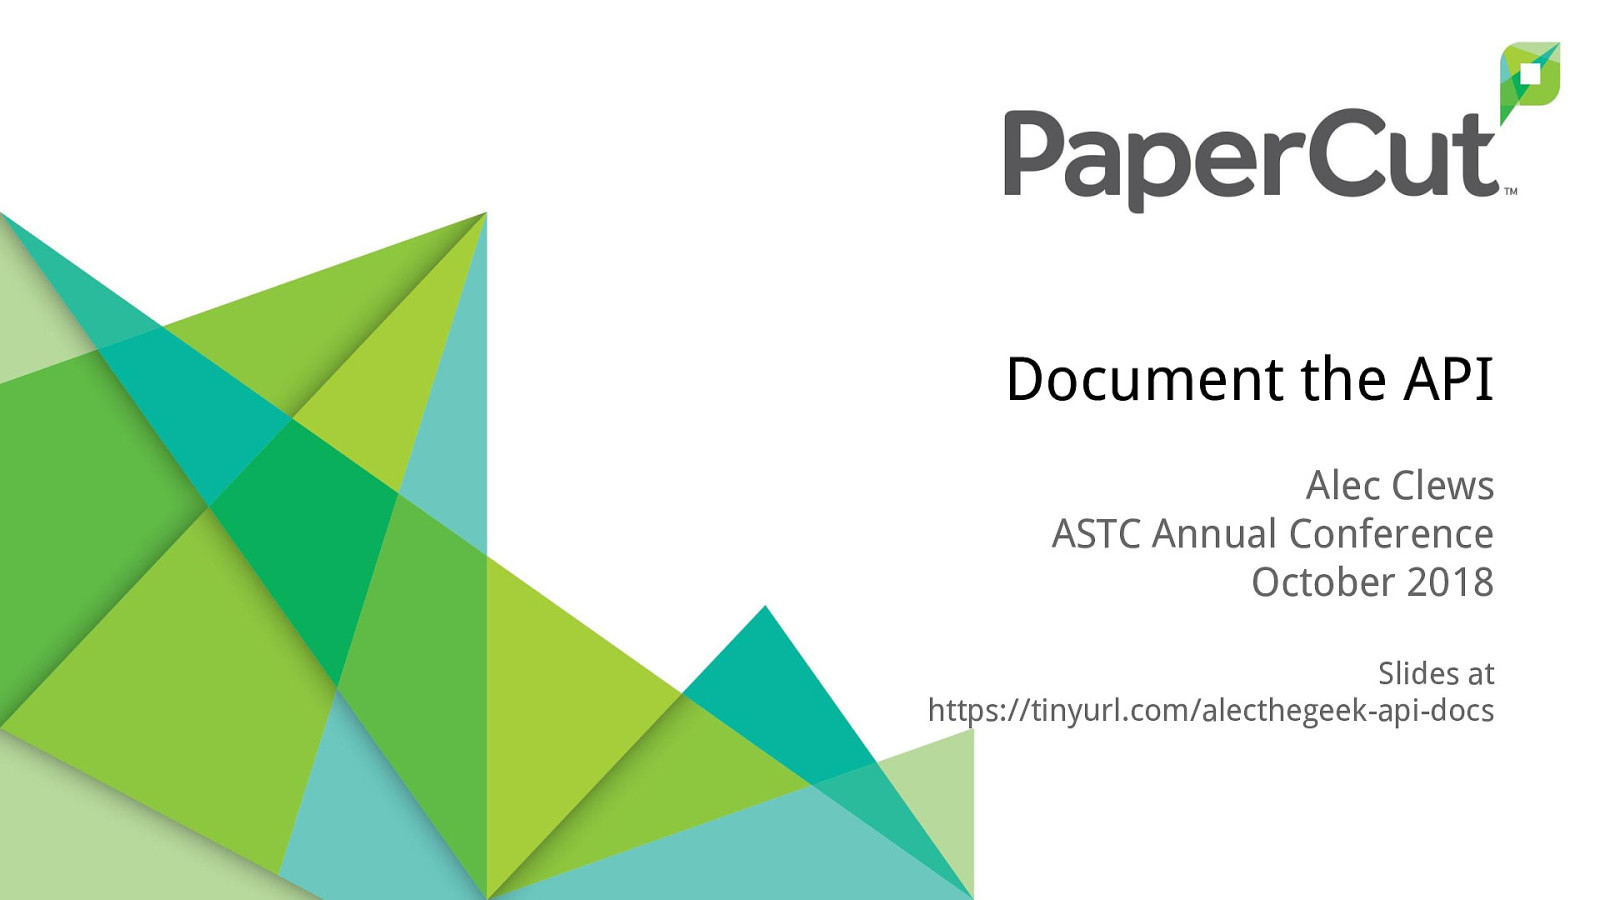 Document the API